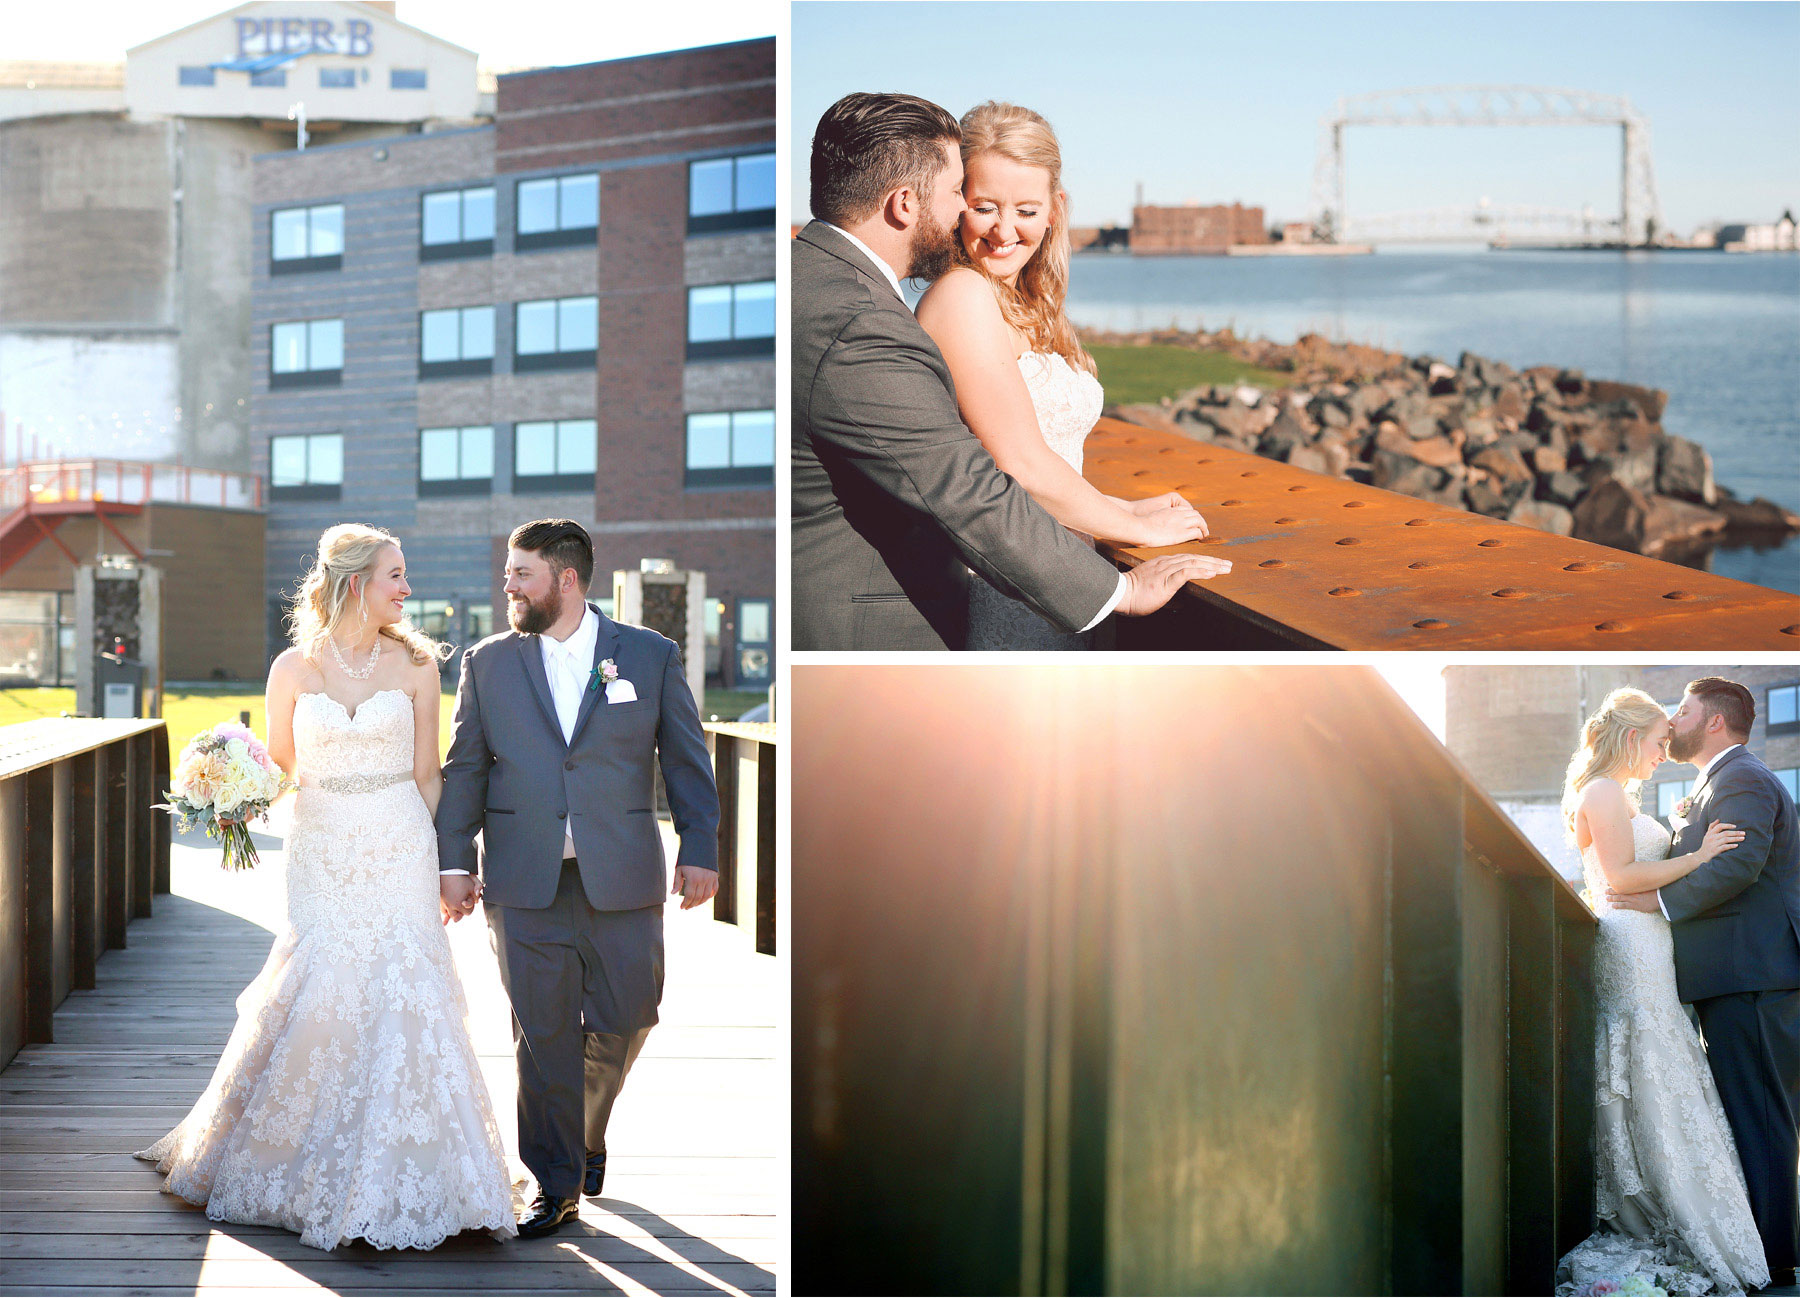 09-Duluth-Minnesota-Wedding-Photographer-by-Andrew-Vick-Photography-Fall-Autumn-Lake-Superior-Aerial-Lift-Bridge-First-Meeting-Look-Bride-Groom-Kiss-Embrace-Vintage-Molly-and-Carson.jpg